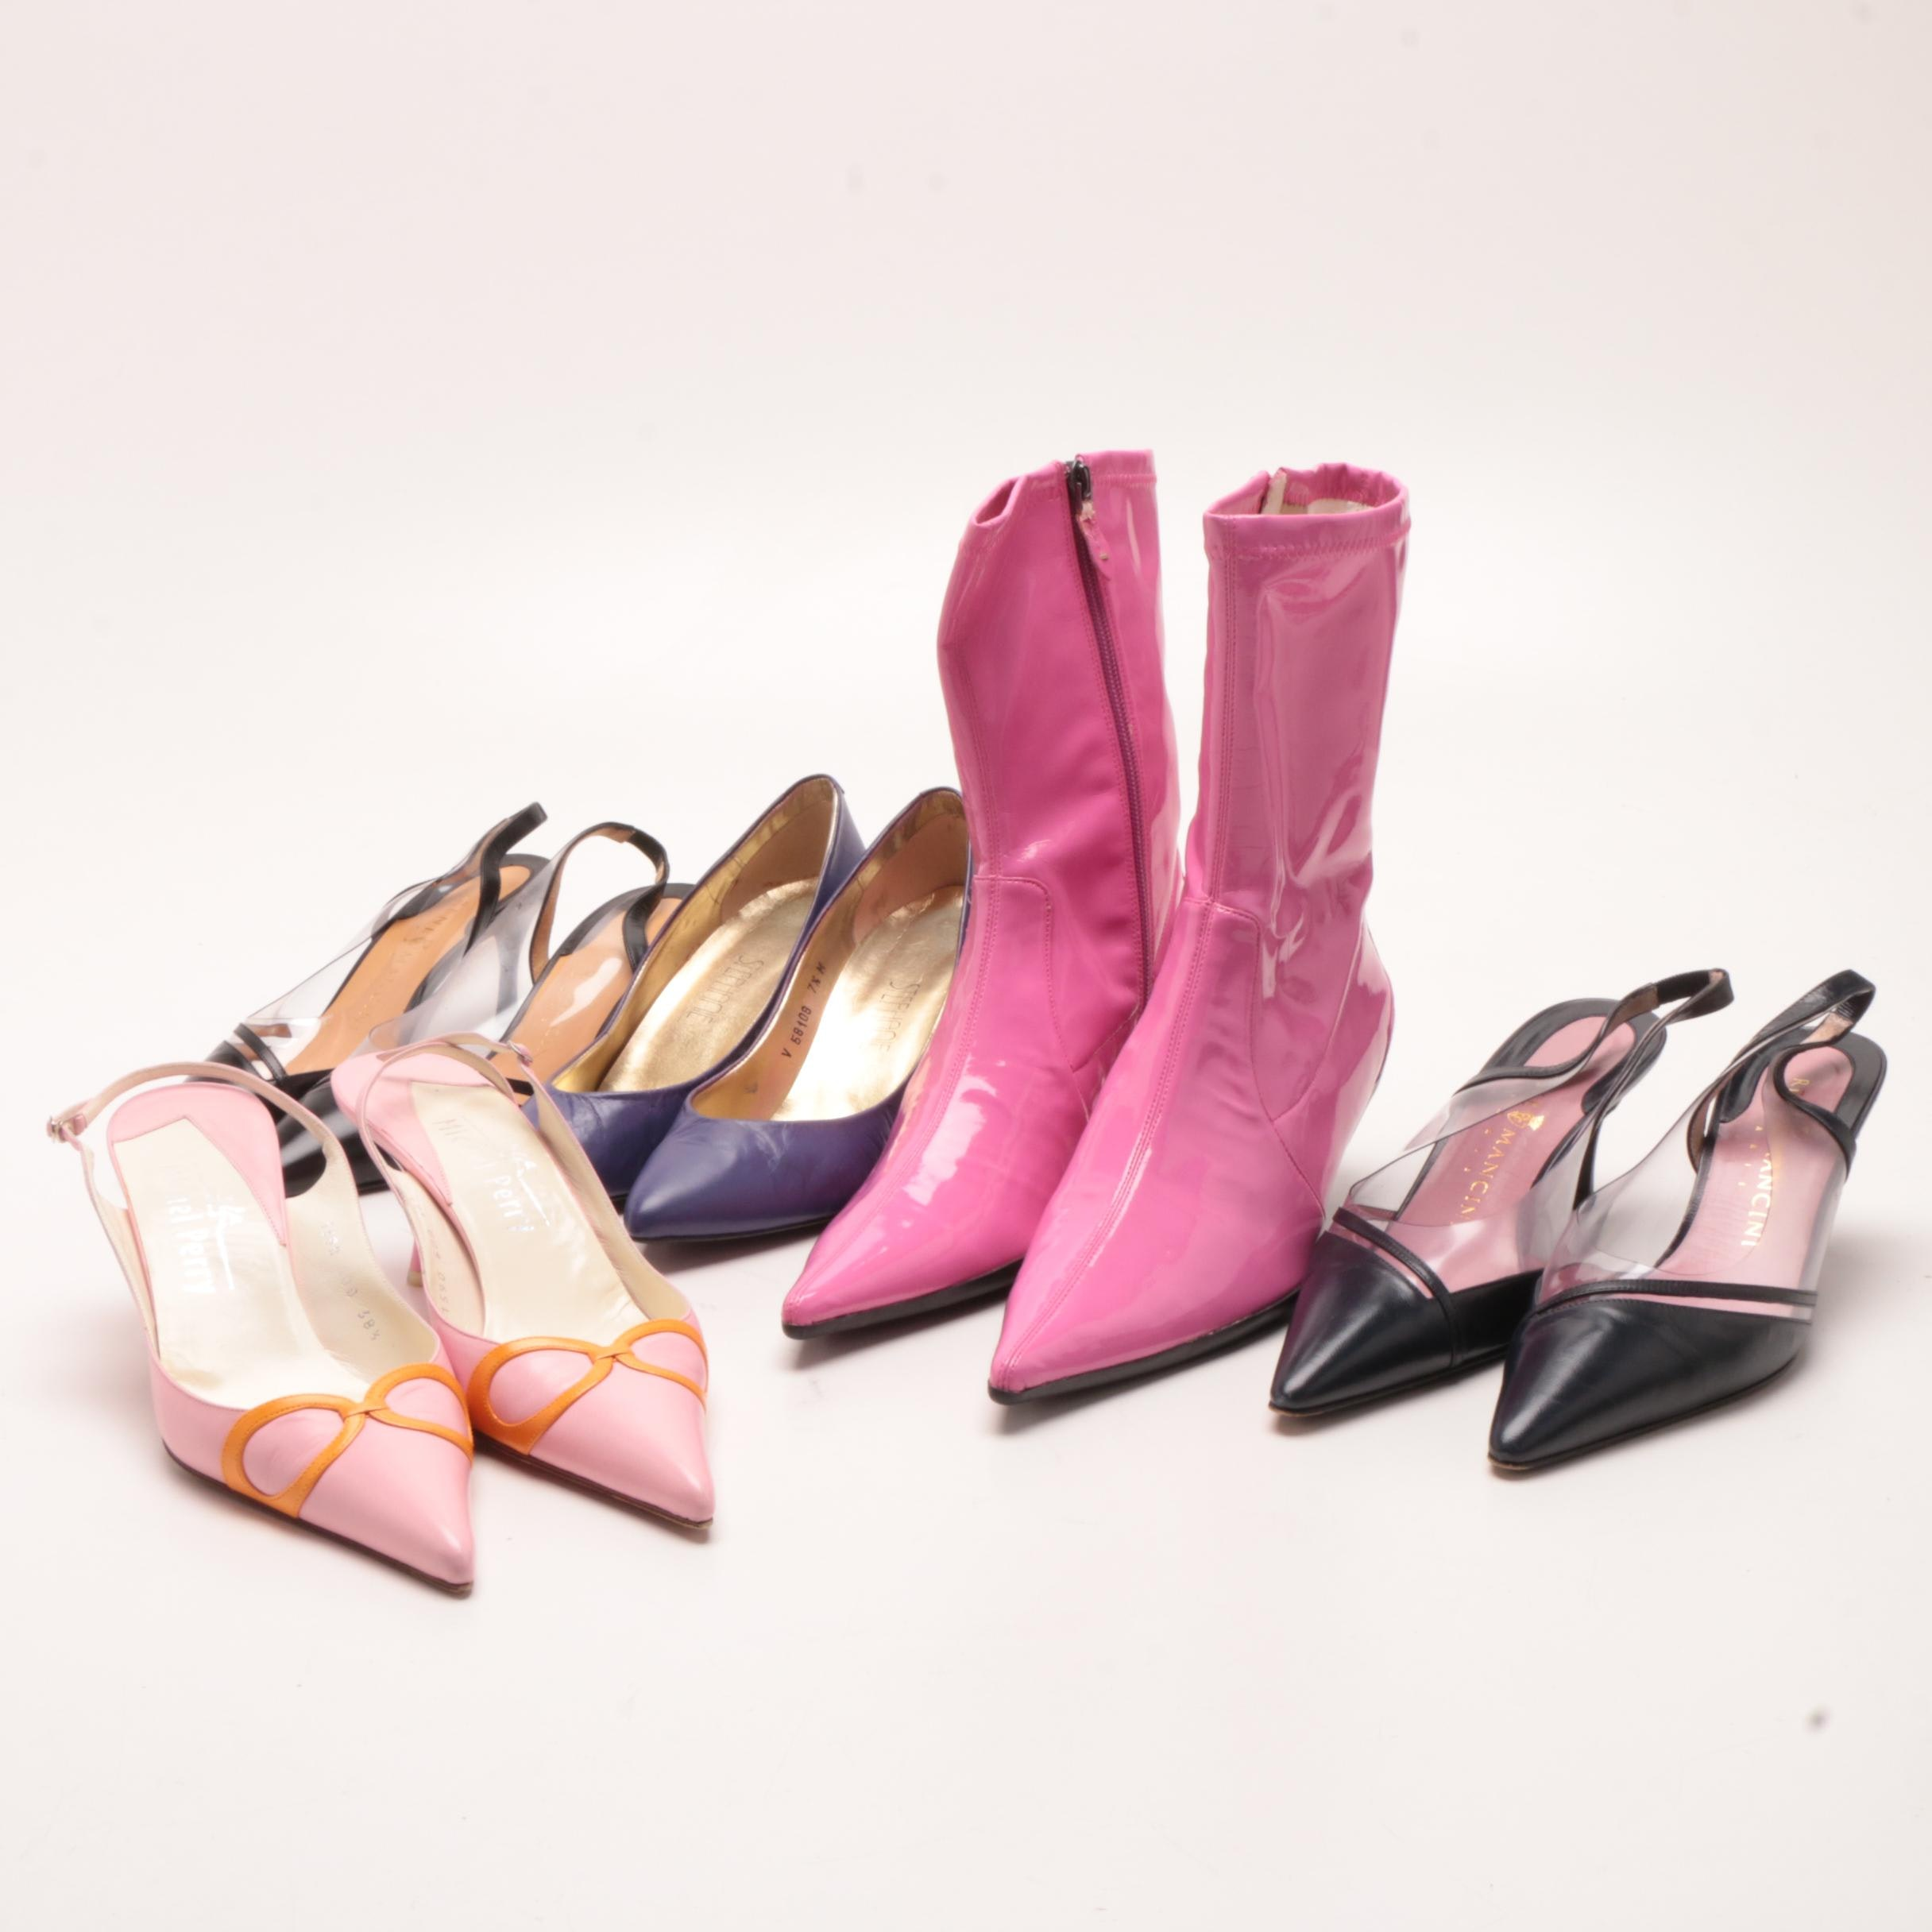 Michel Perry, Rene Mancini, Stephanie and Vaneli Slingbacks, Pumps and Boots